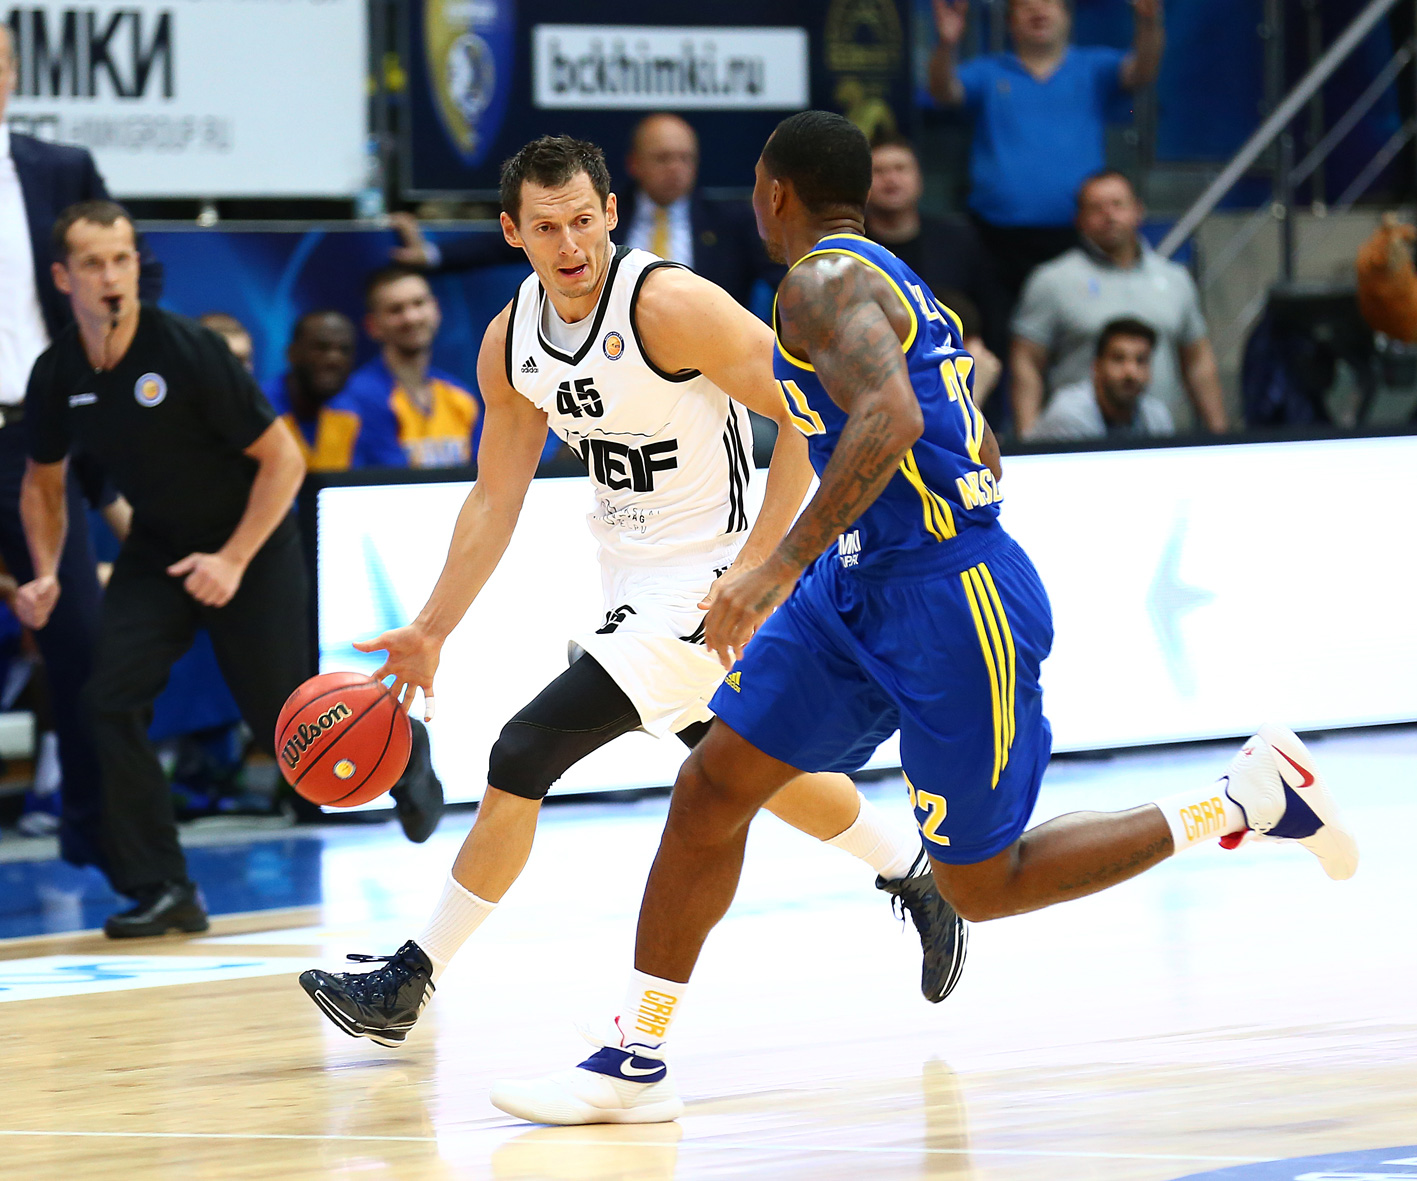 VEF Stuns Khimki On The Road